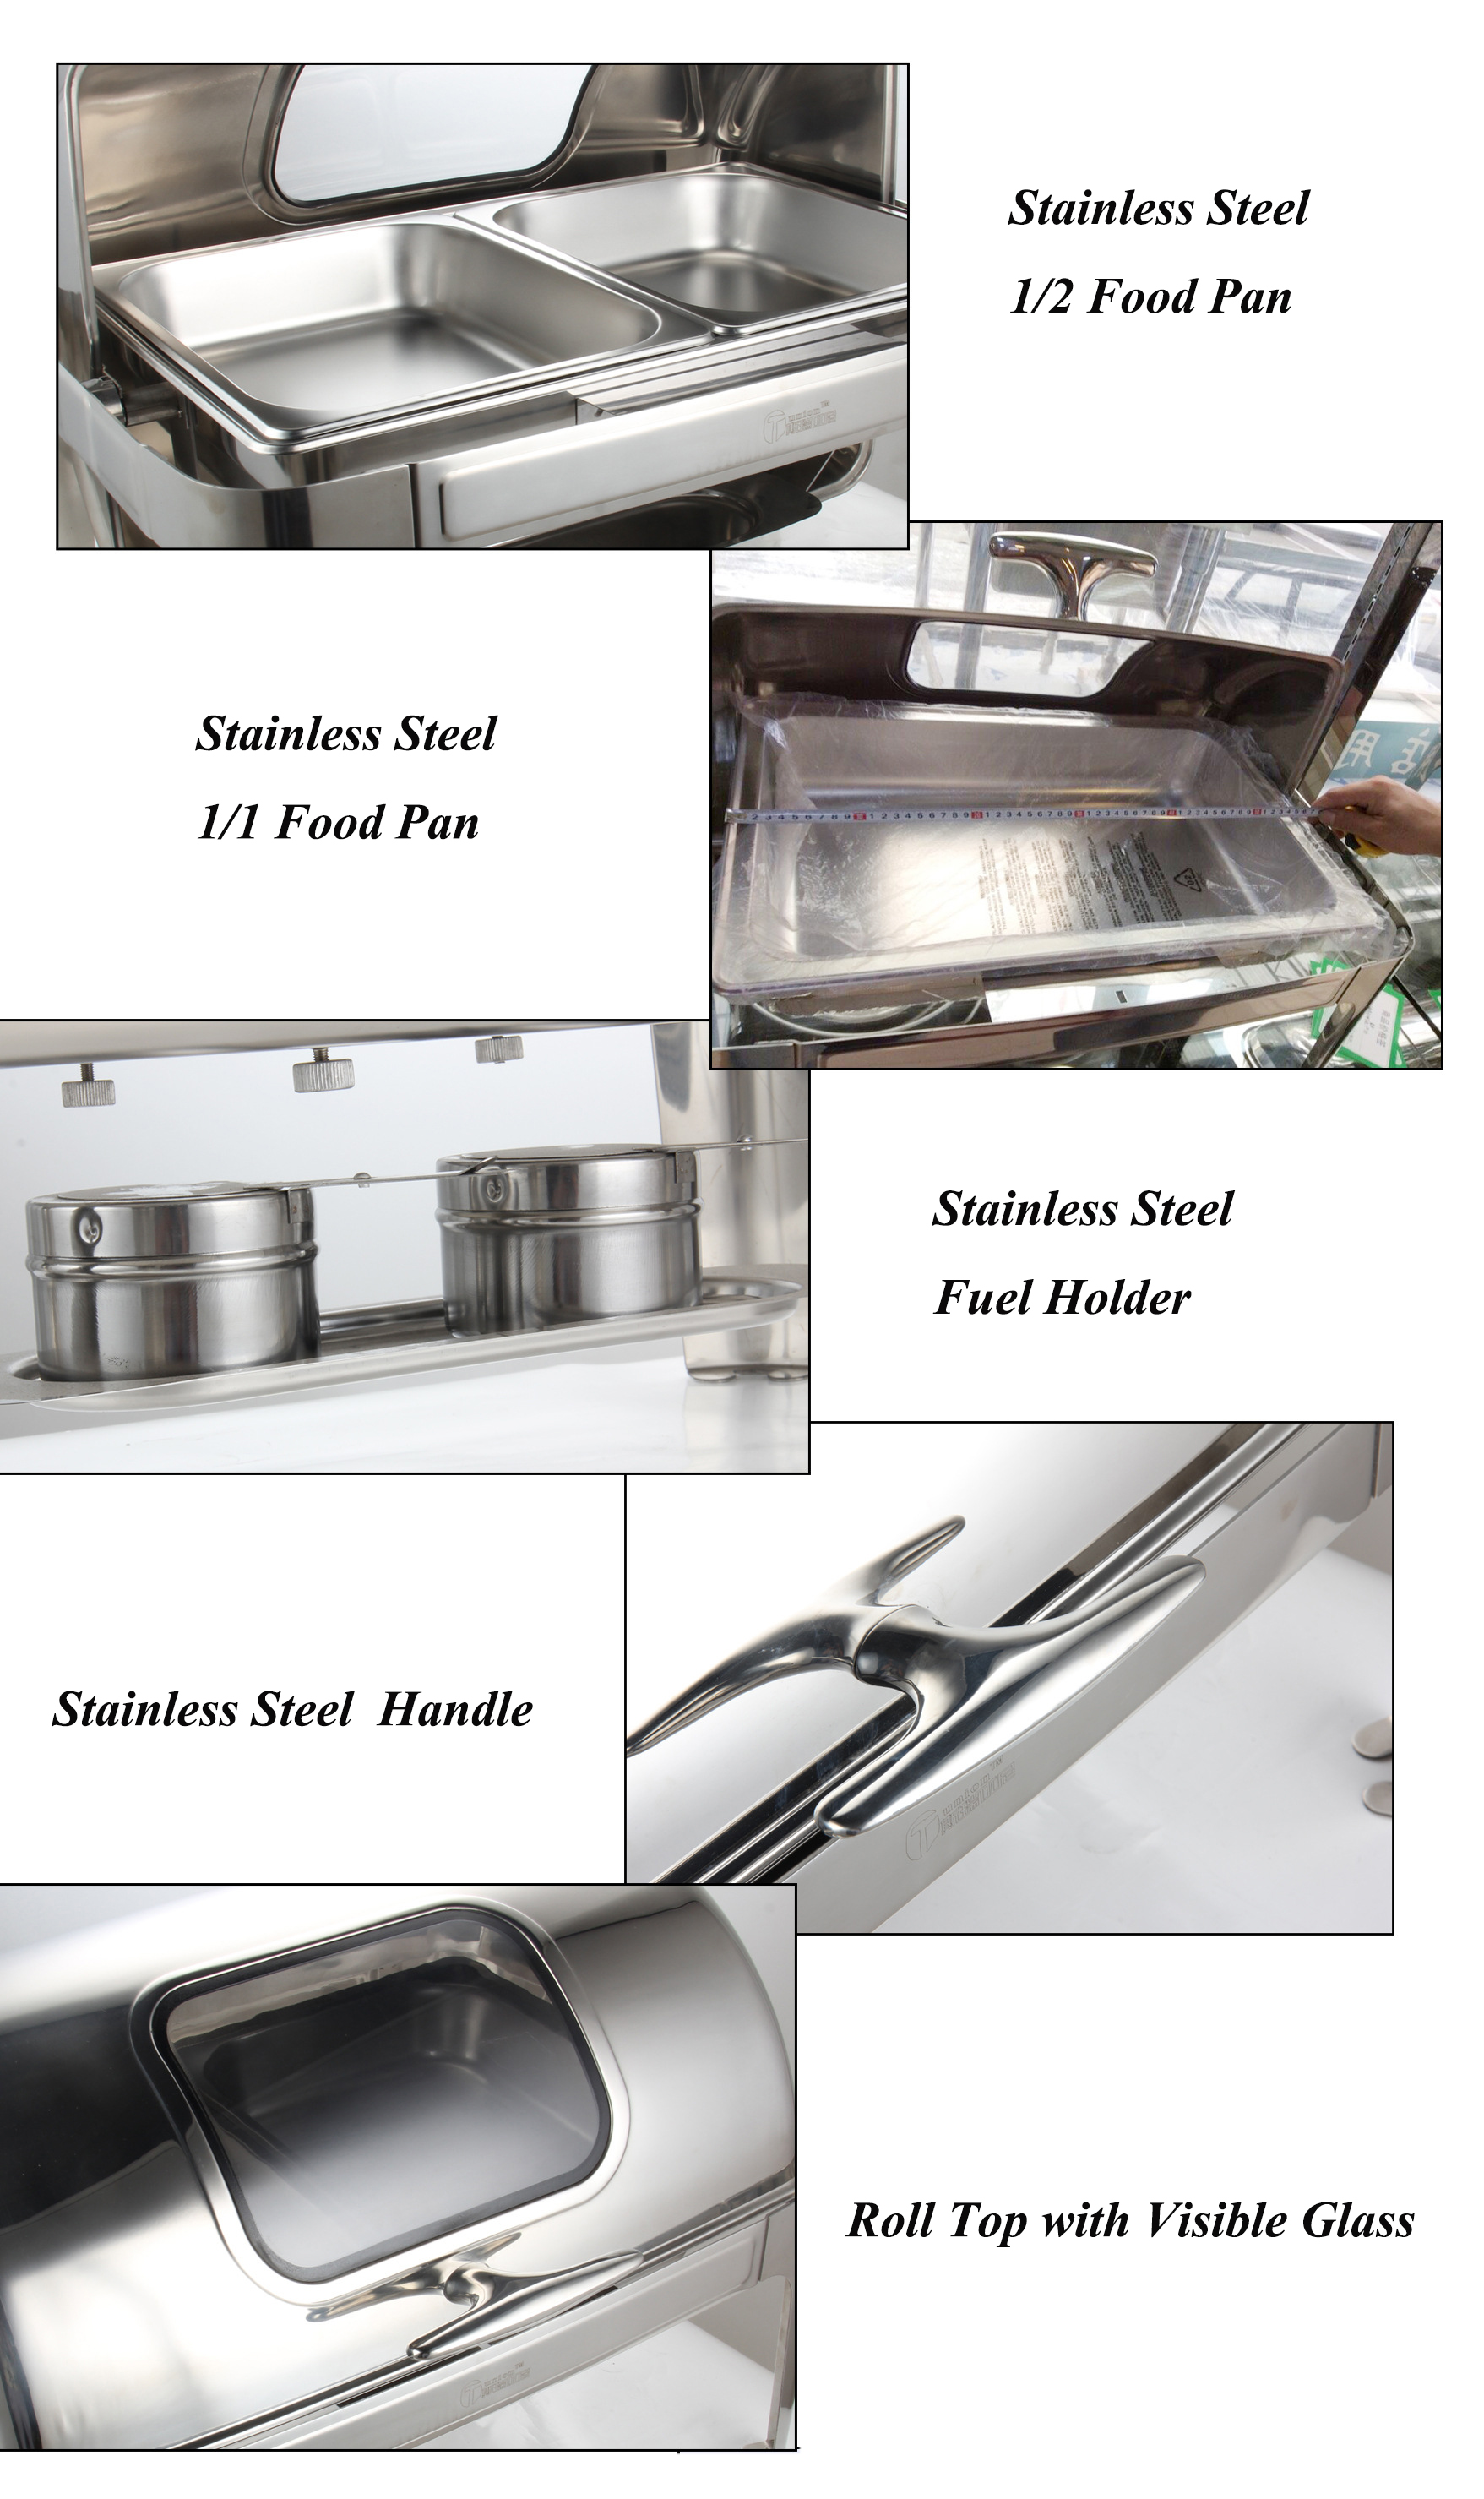 mercial kitchen equipment restaurant buffet food warmer for